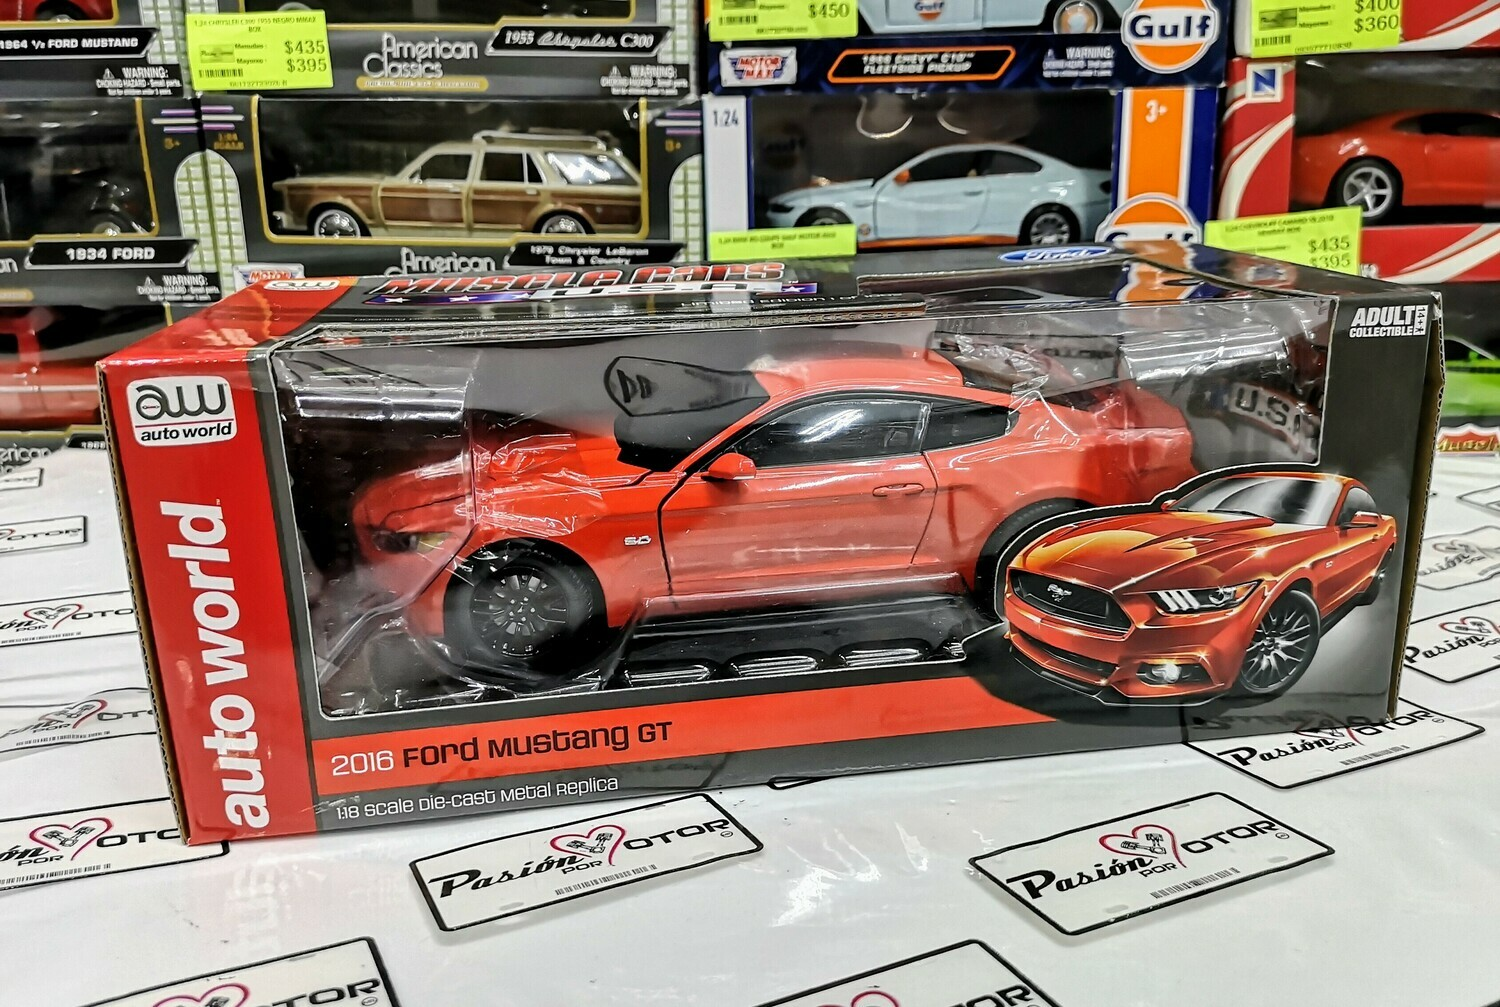 1:18 Ford Mustang GT 2016 Naranja Auto World Muscle Cars U.S.A.